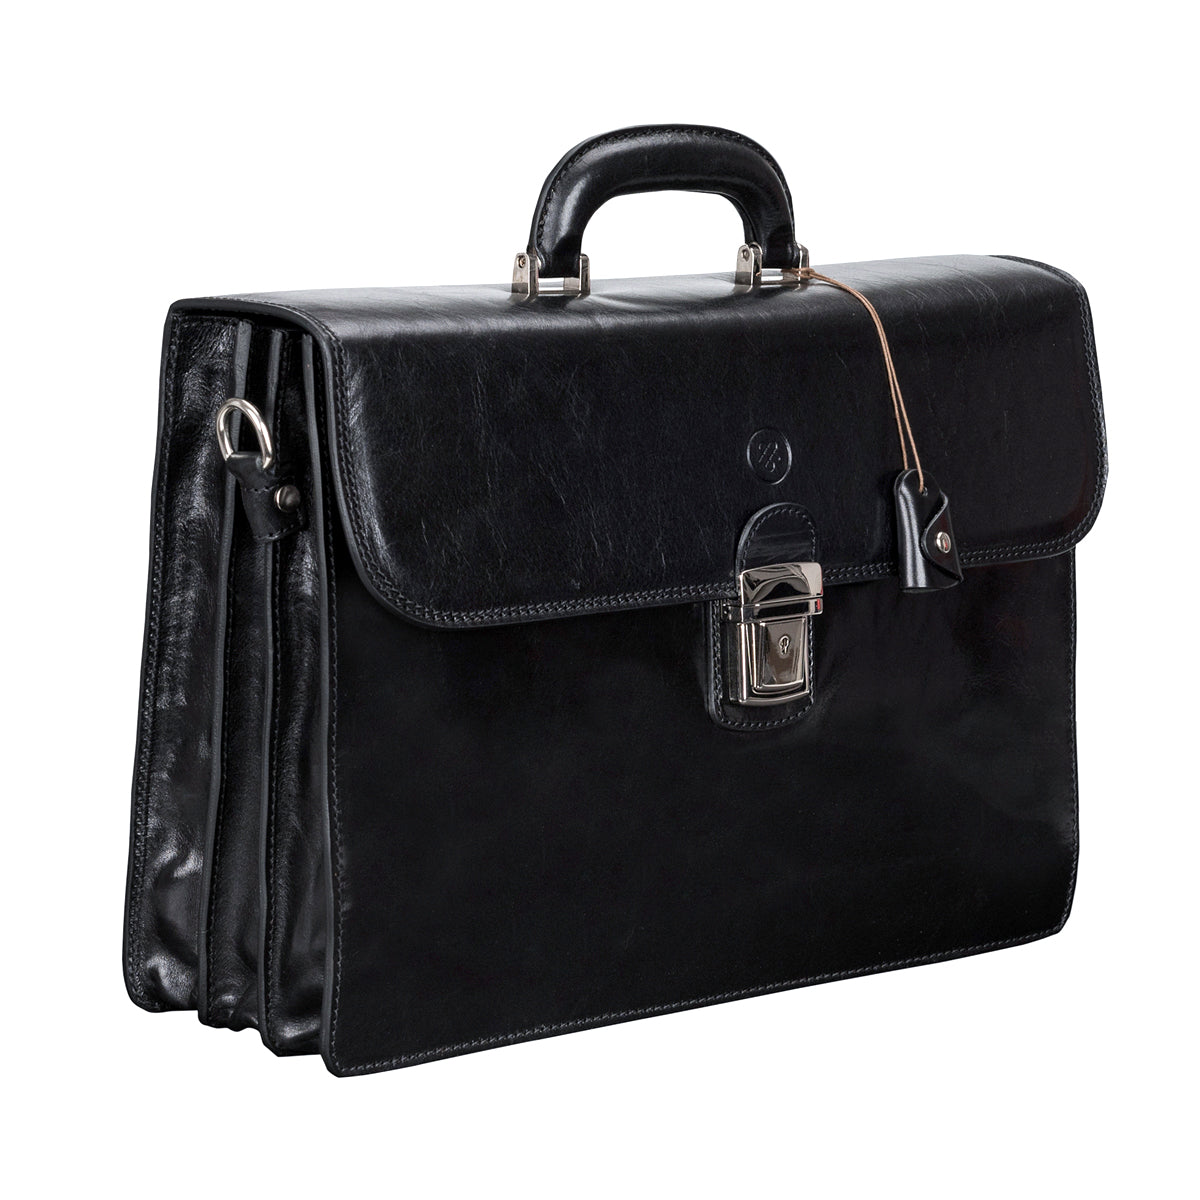 Image 2 of the 'Paolo Tre' Handmade Black Veg-Tanned Leather Suitcase